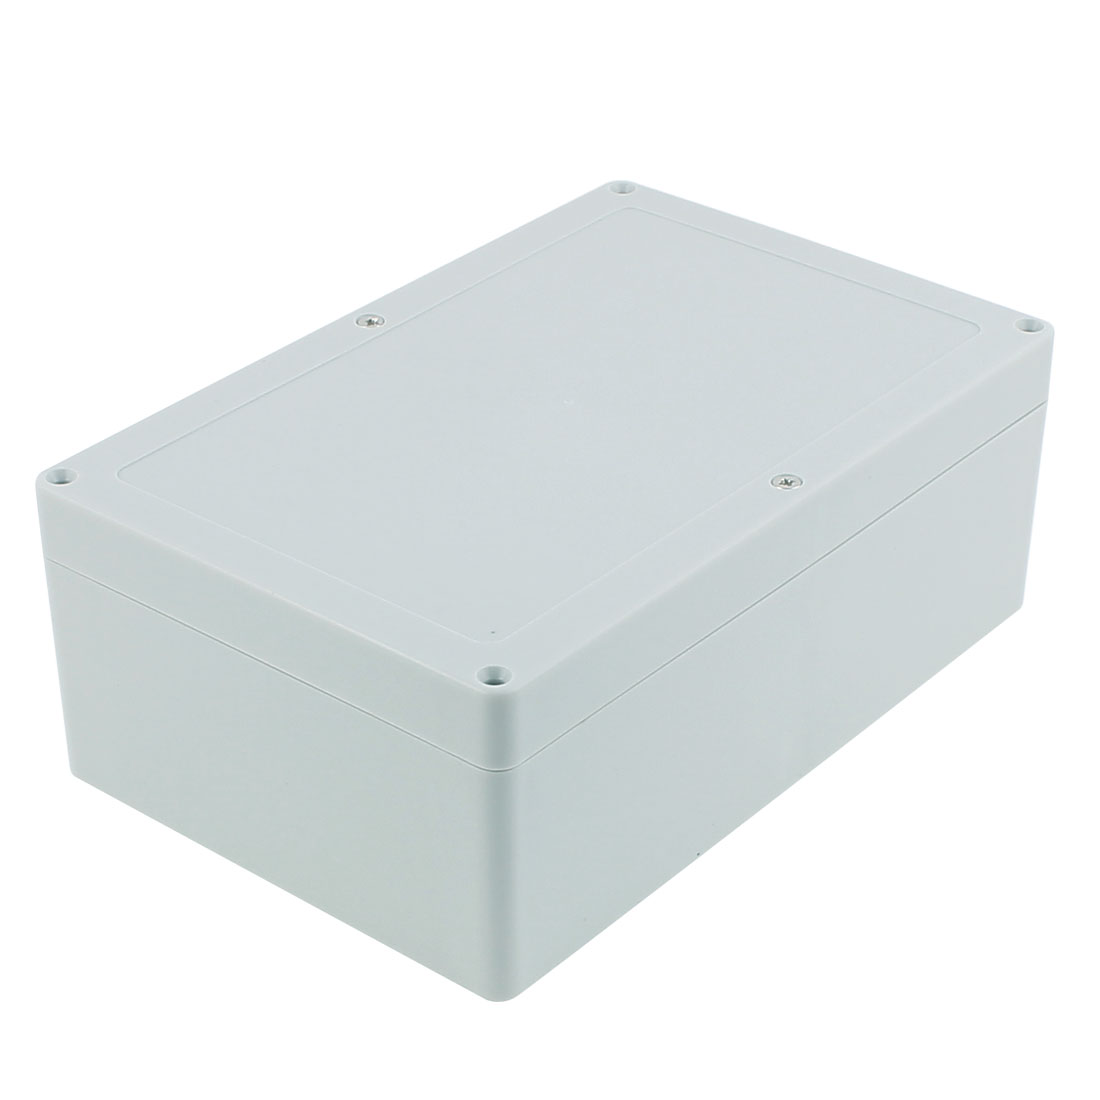 230 x 150 x 85mm Dustproof IP65 Junction Box DIY Terminal Connection Box Enclosure